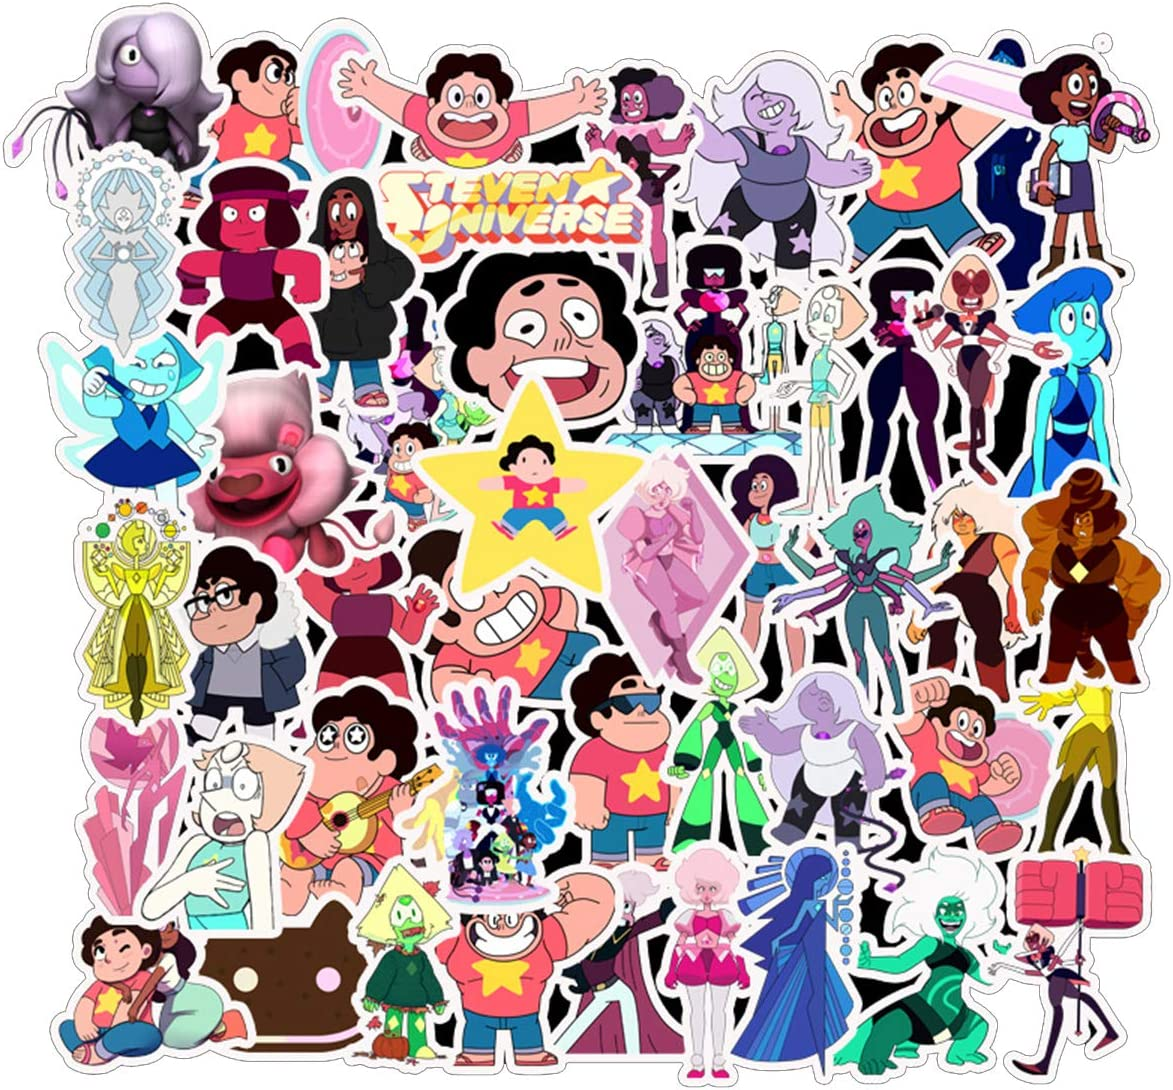 Steven Universe Stickers Laptop Stickers Waterproof Skateboard Car Snowboard Bicycle Luggage Decor